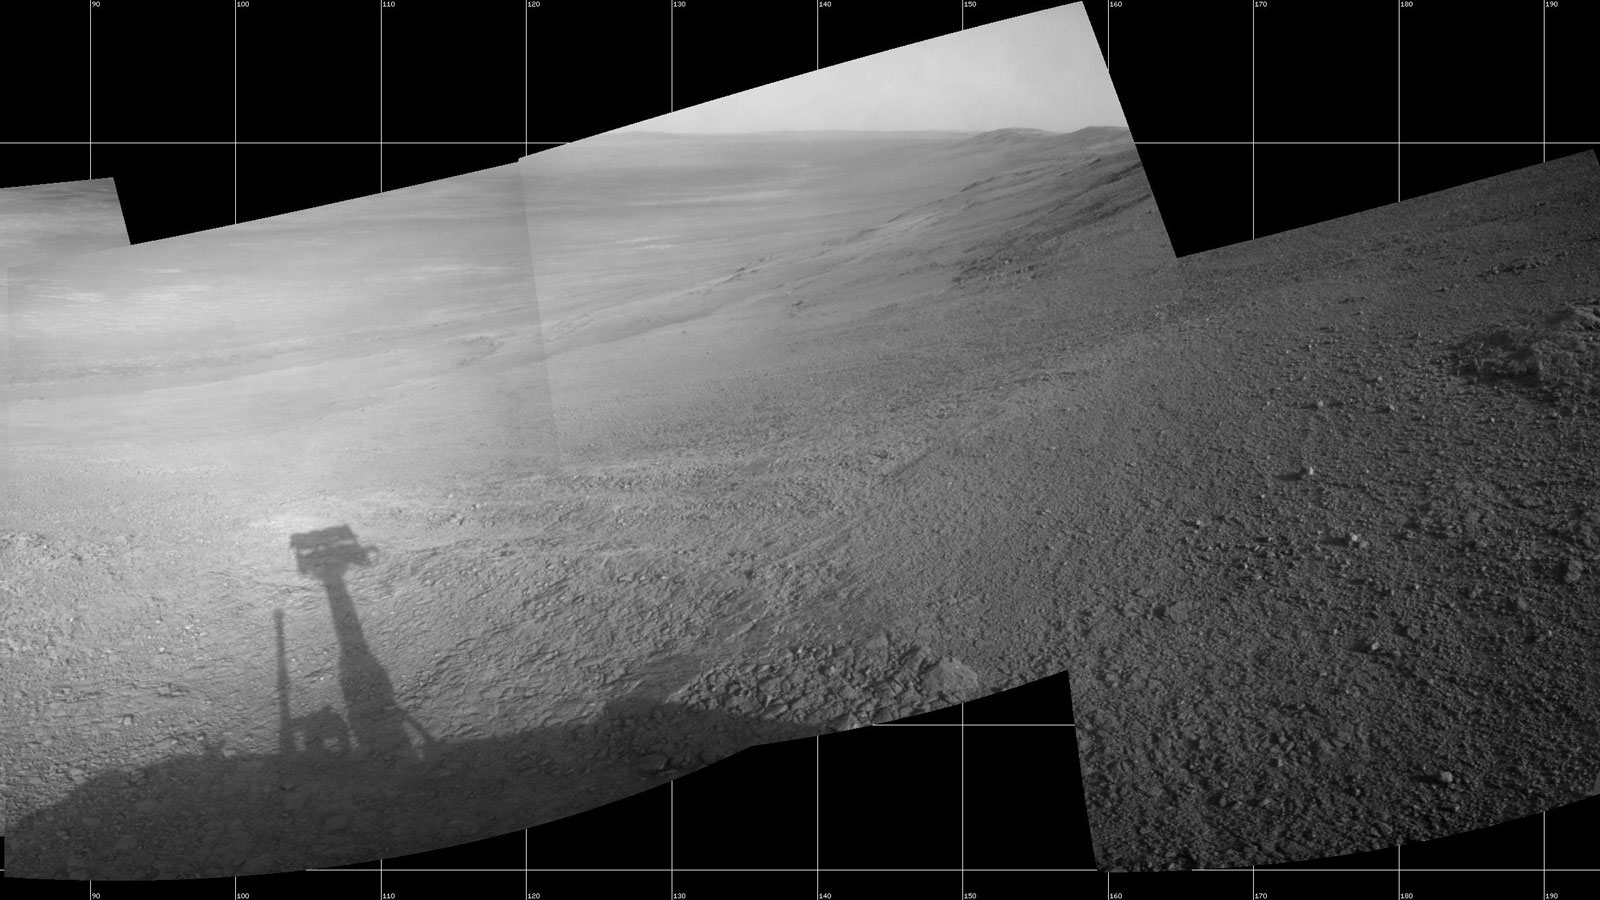 mars rover opportunity back online - photo #15